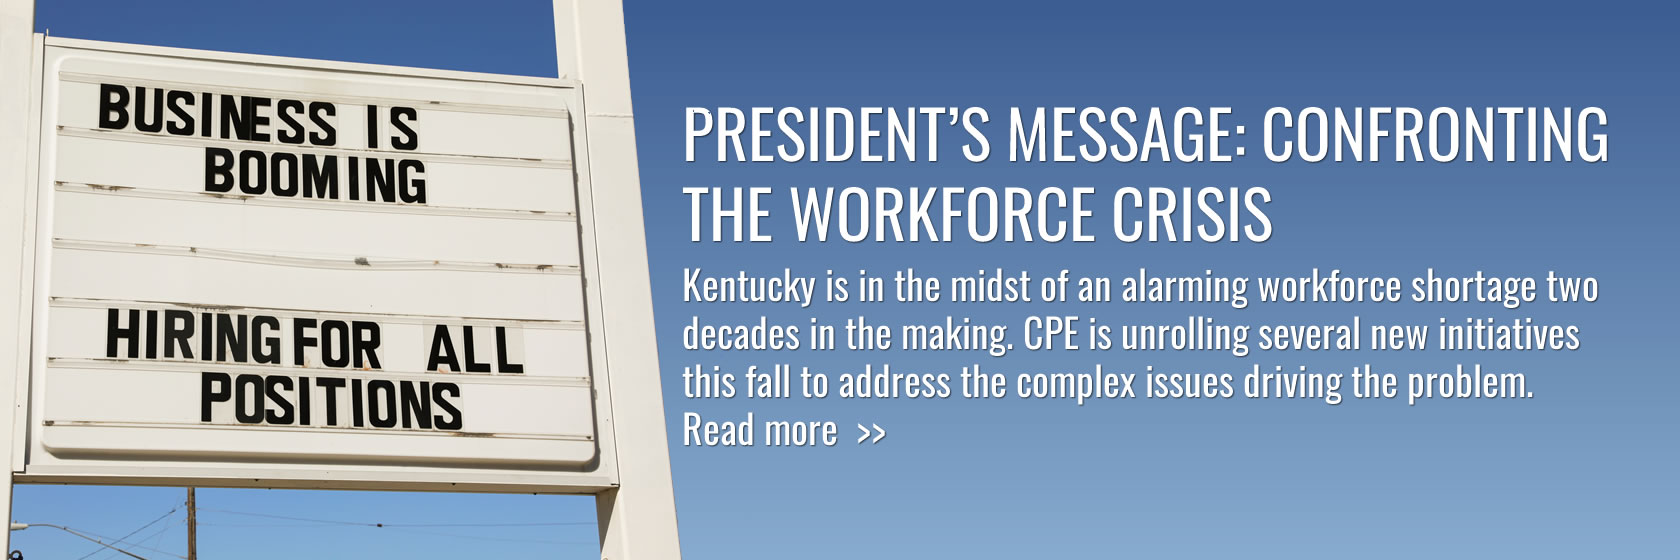 Kentucky is in the midst of an alarming workforce shortage two decades in the making. CPE is unrolling several new initiatives this fall to address the complex issues driving the problem.